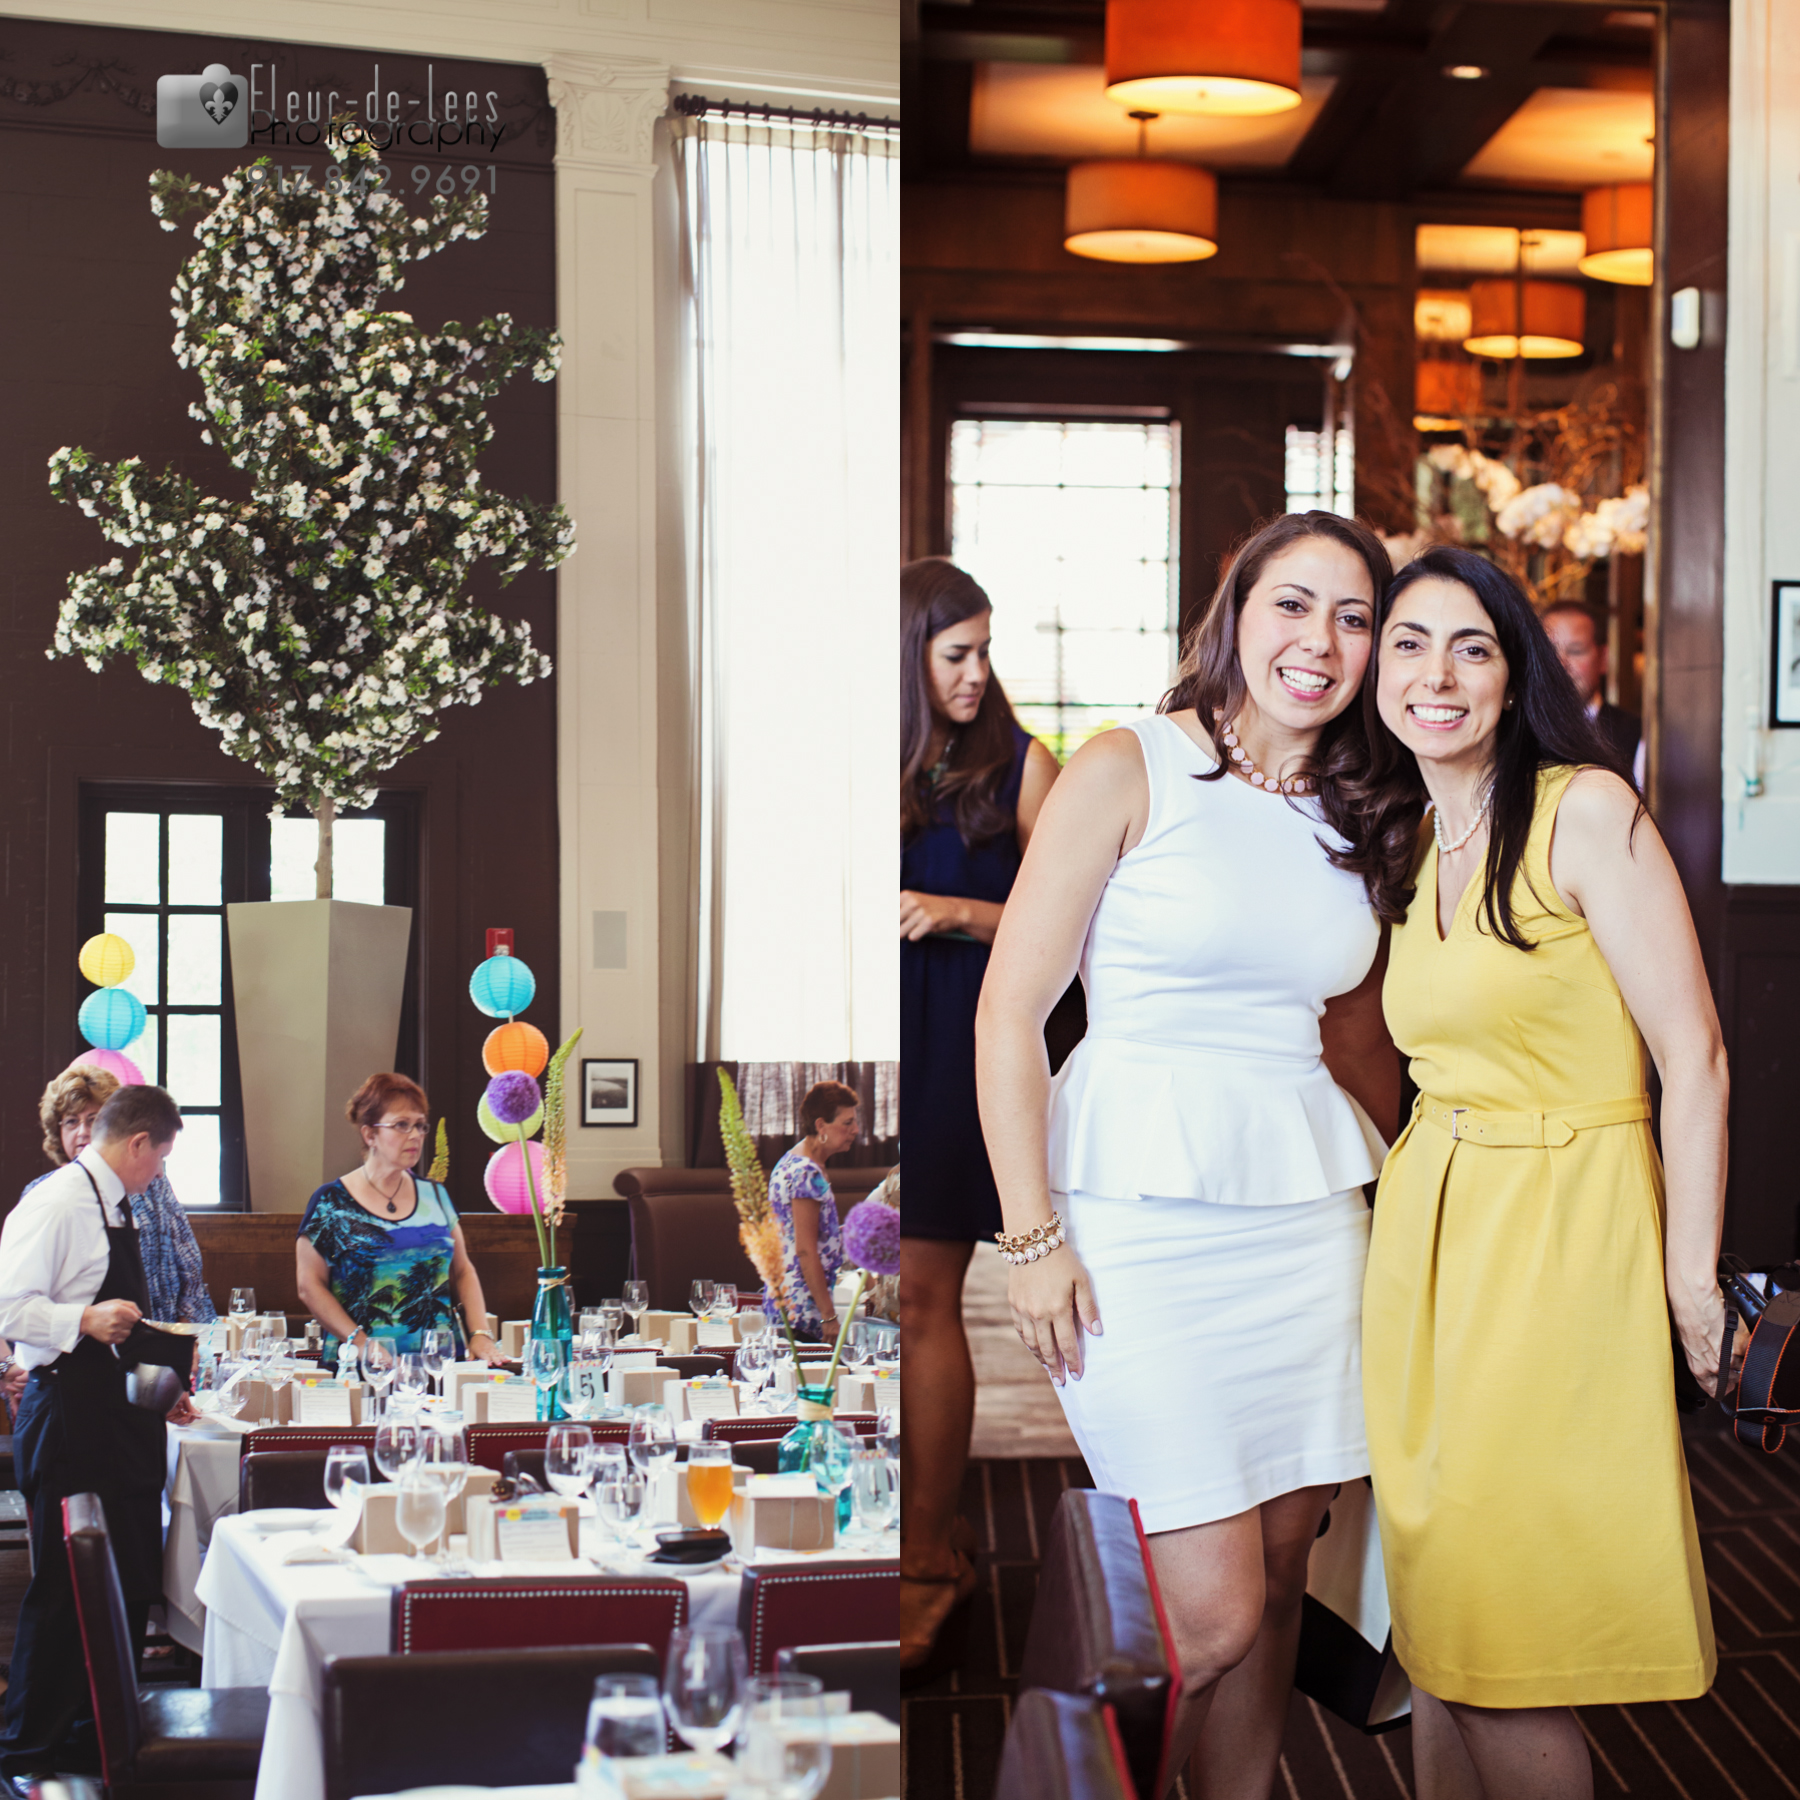 Restaurants For Bridal Showers In Nyc Bridal Krtsy